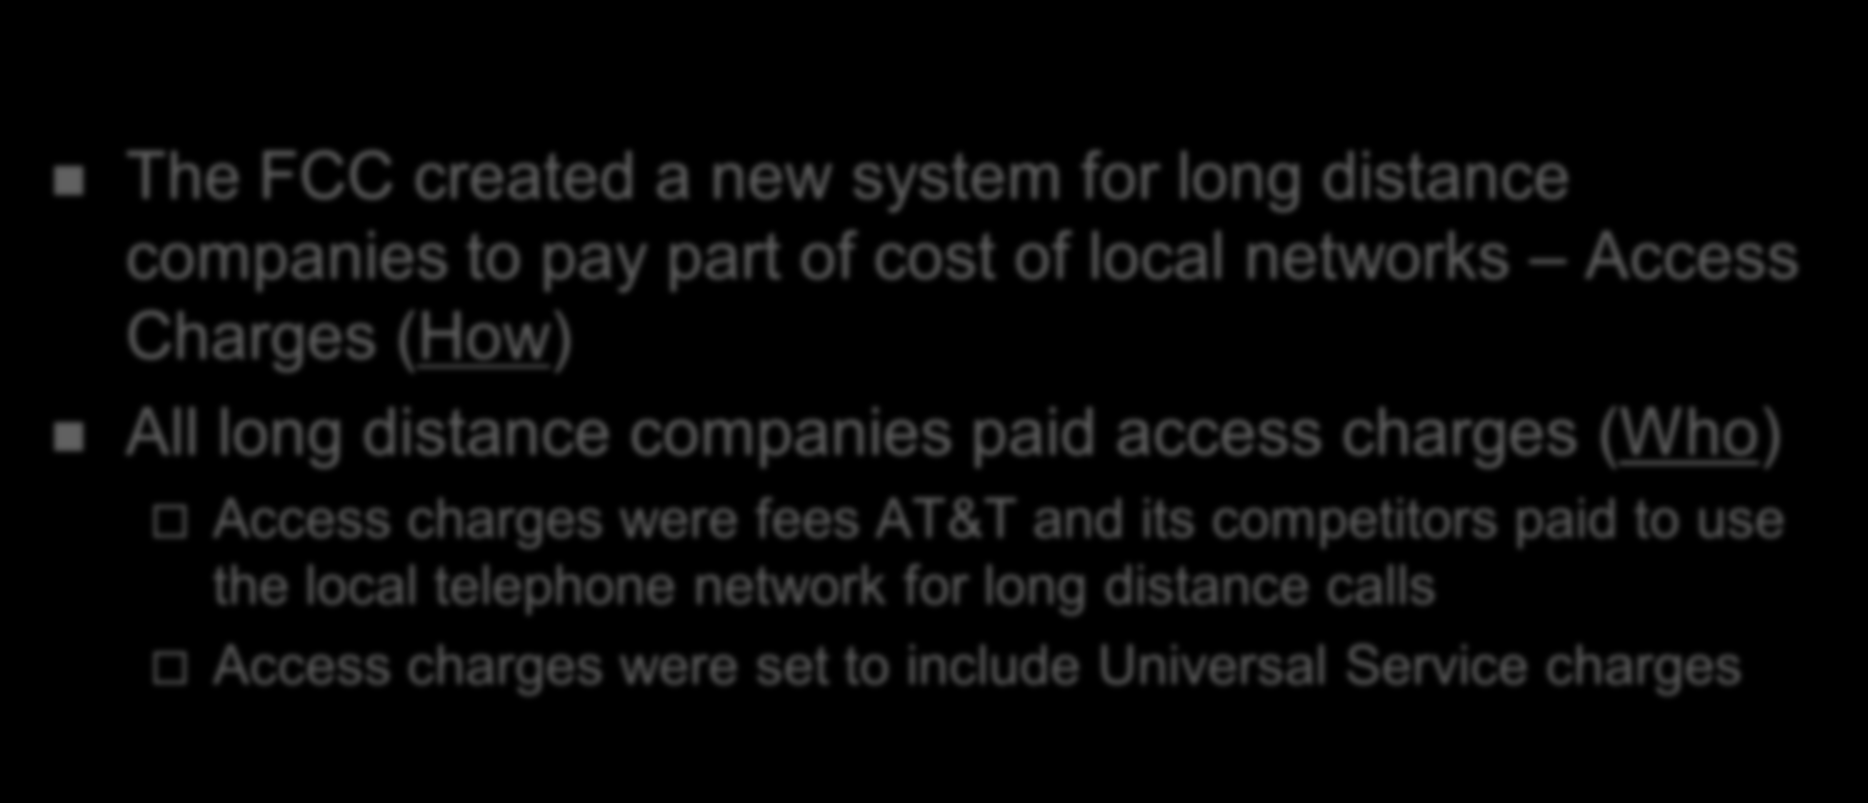 History of Universal Service in the USA The FCC created a new system for long distance companies to pay part of cost of local networks Access Charges (How) All long distance companies paid